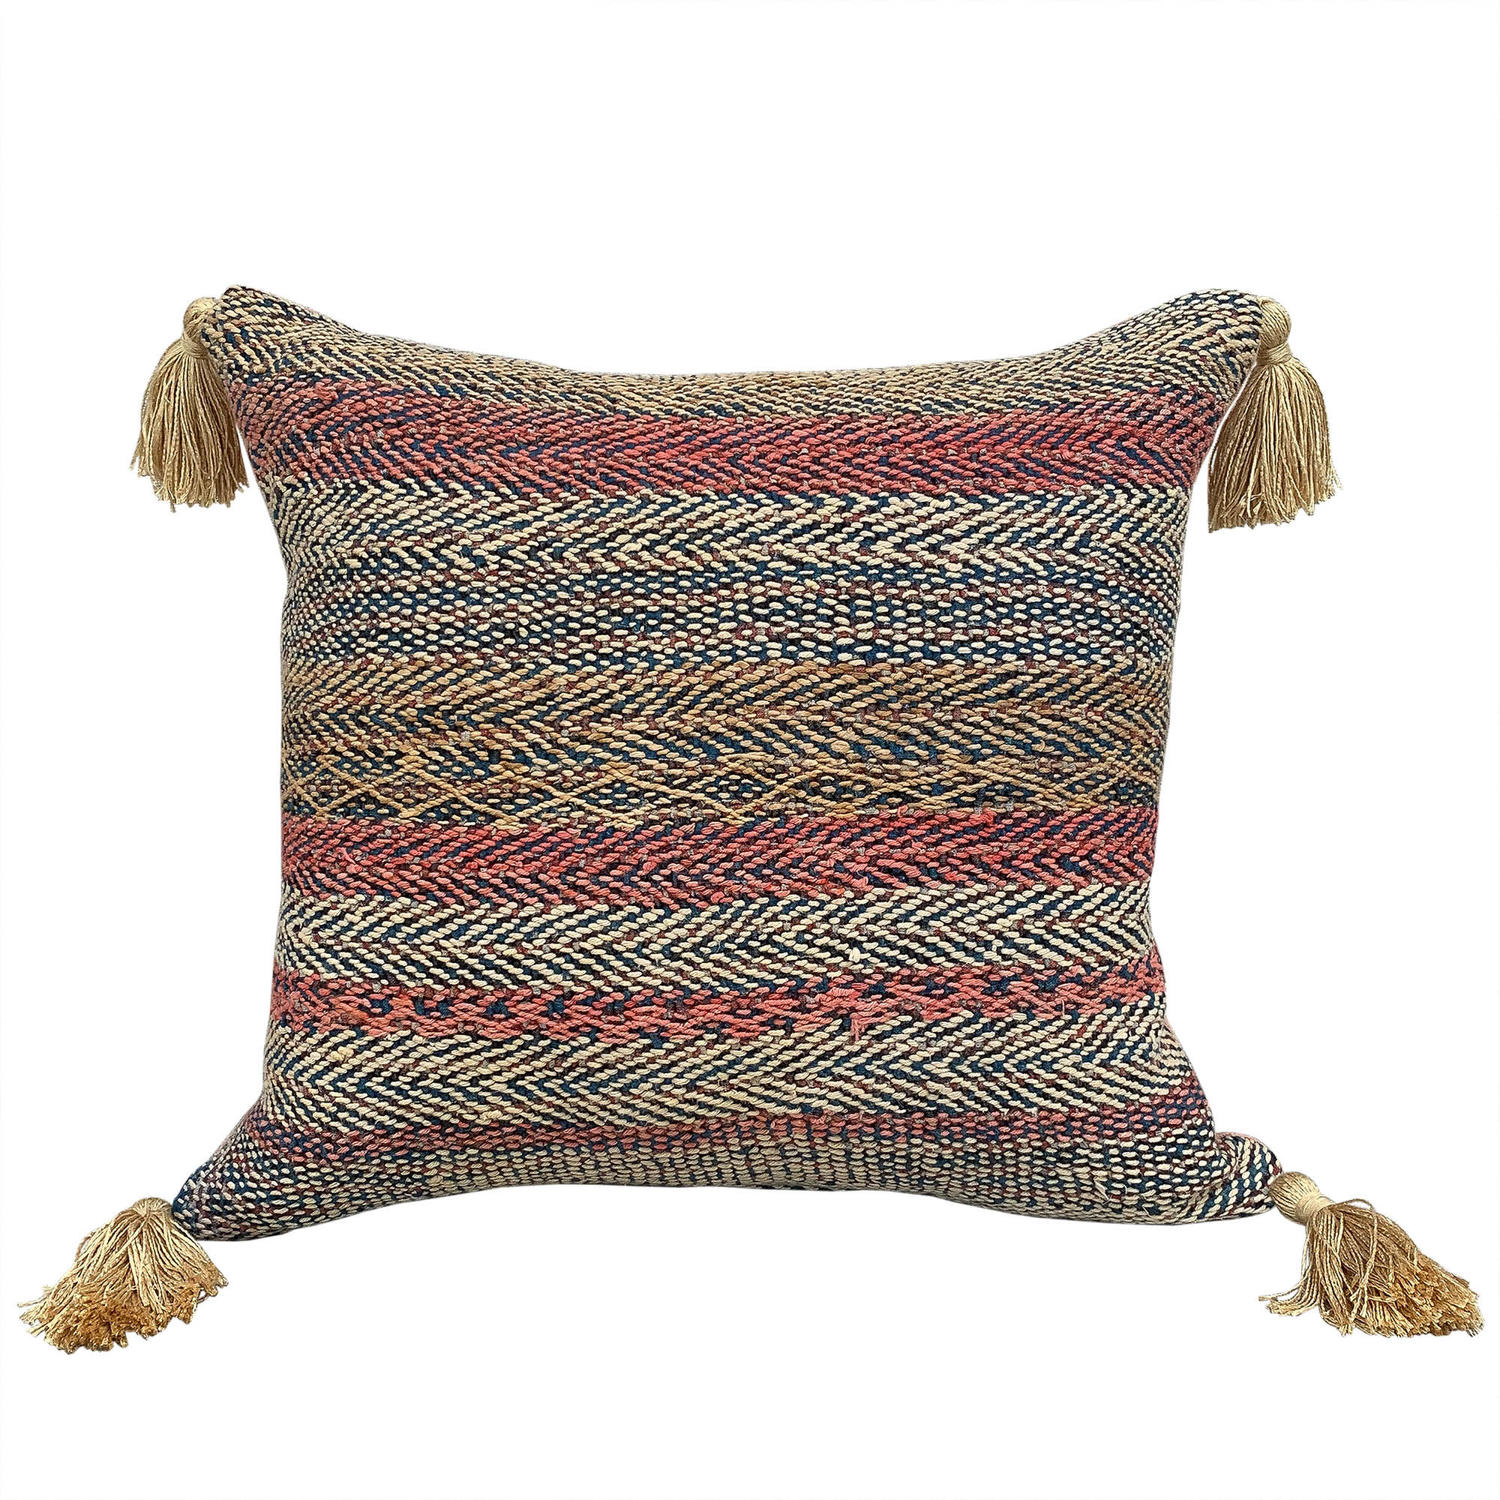 Banjara Cushions with Gold Tassels